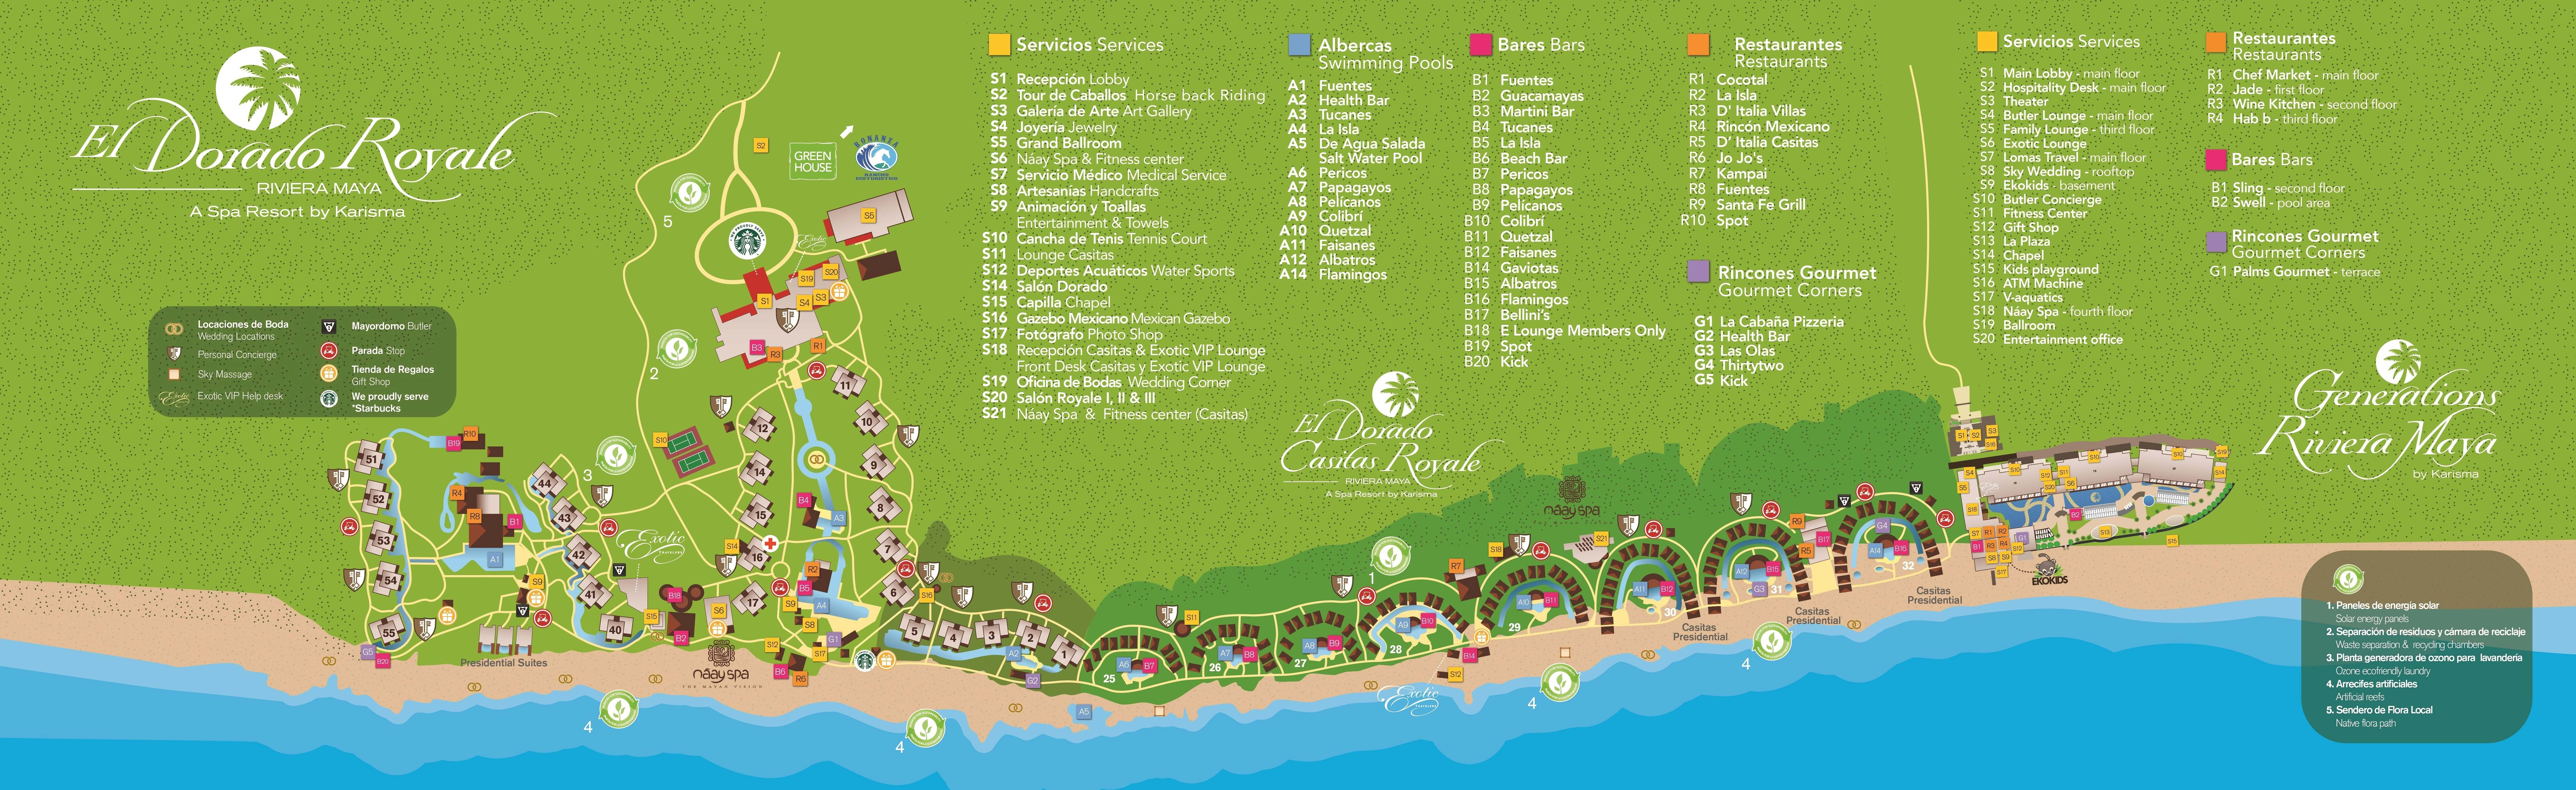 Location Cancun Golf Courses Map on